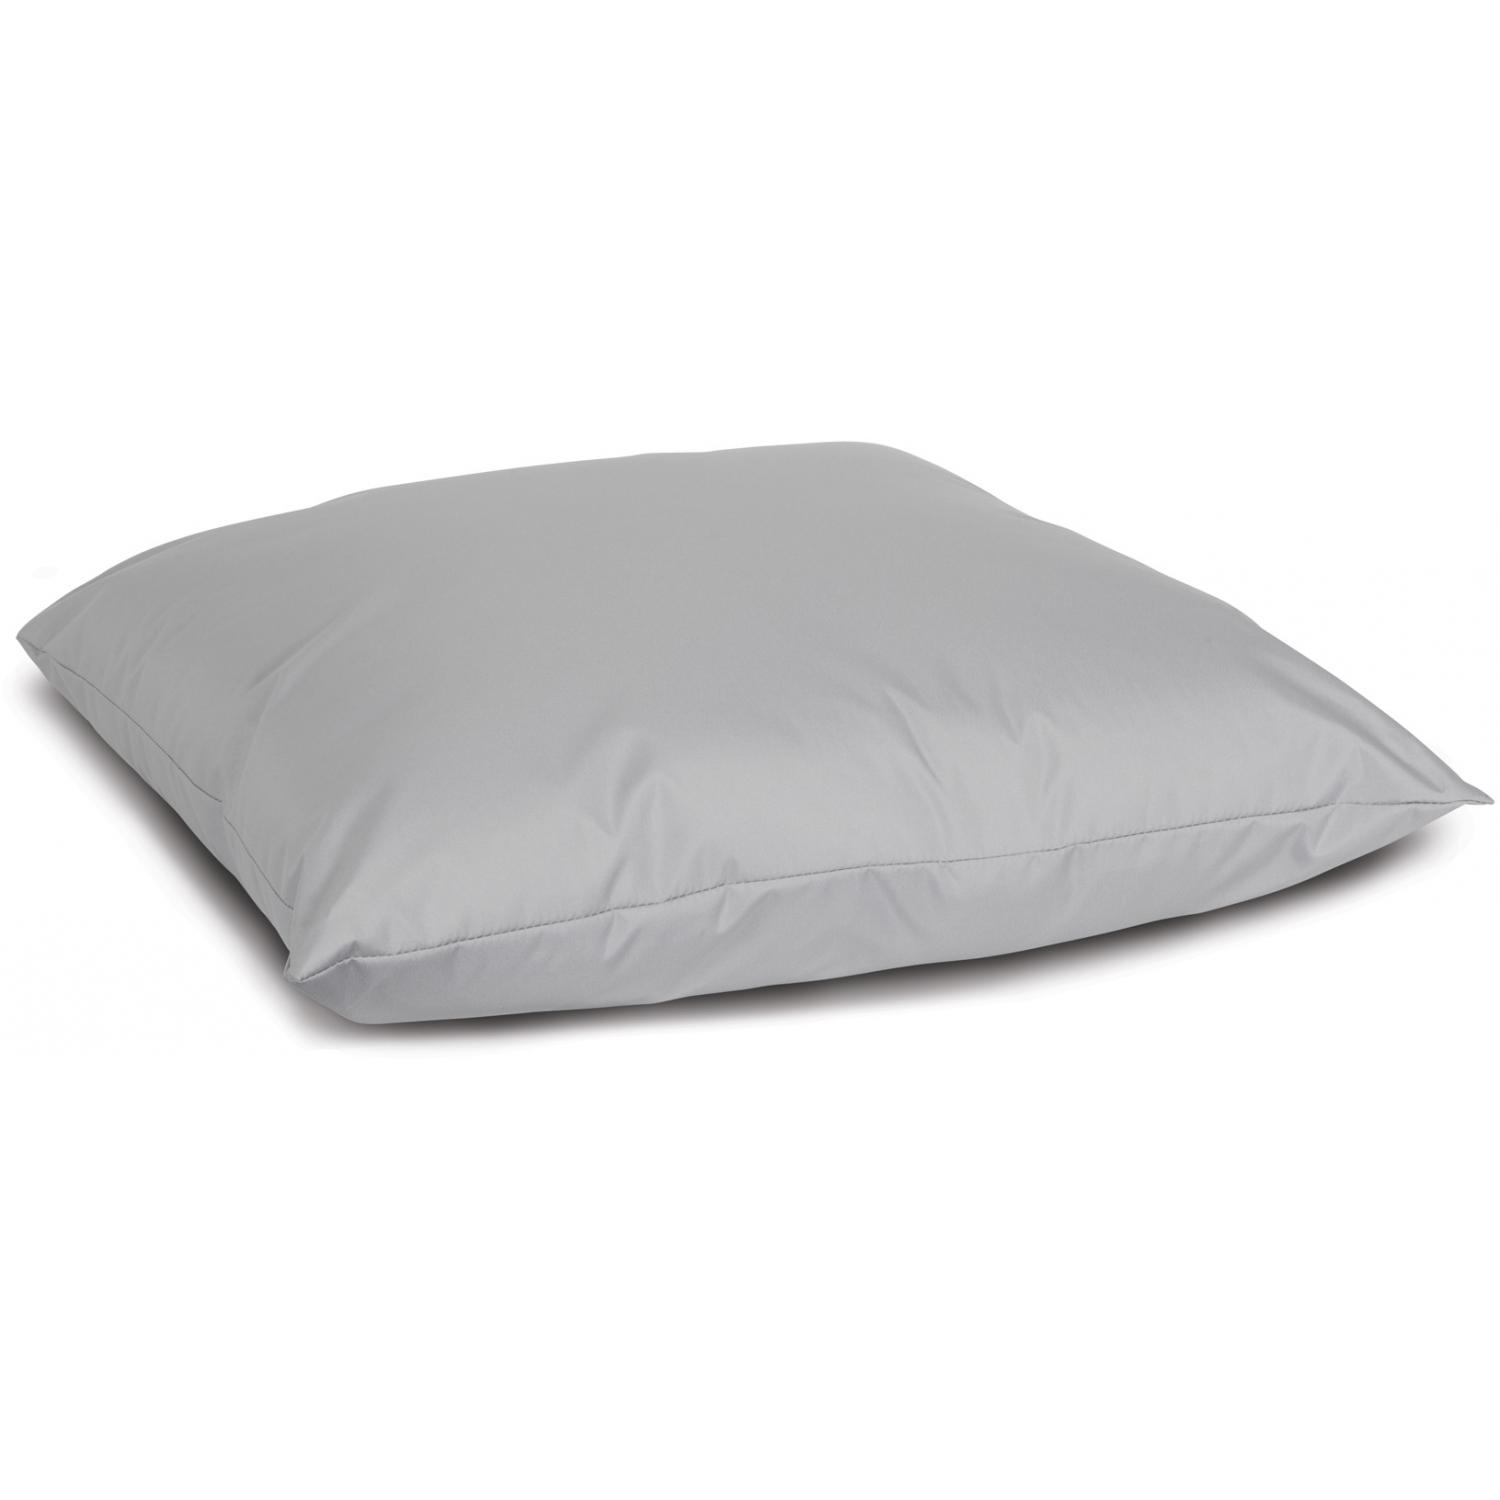 Classic Accessories Evaporation Cooler Cover Heat Pillow - Grey 2825978